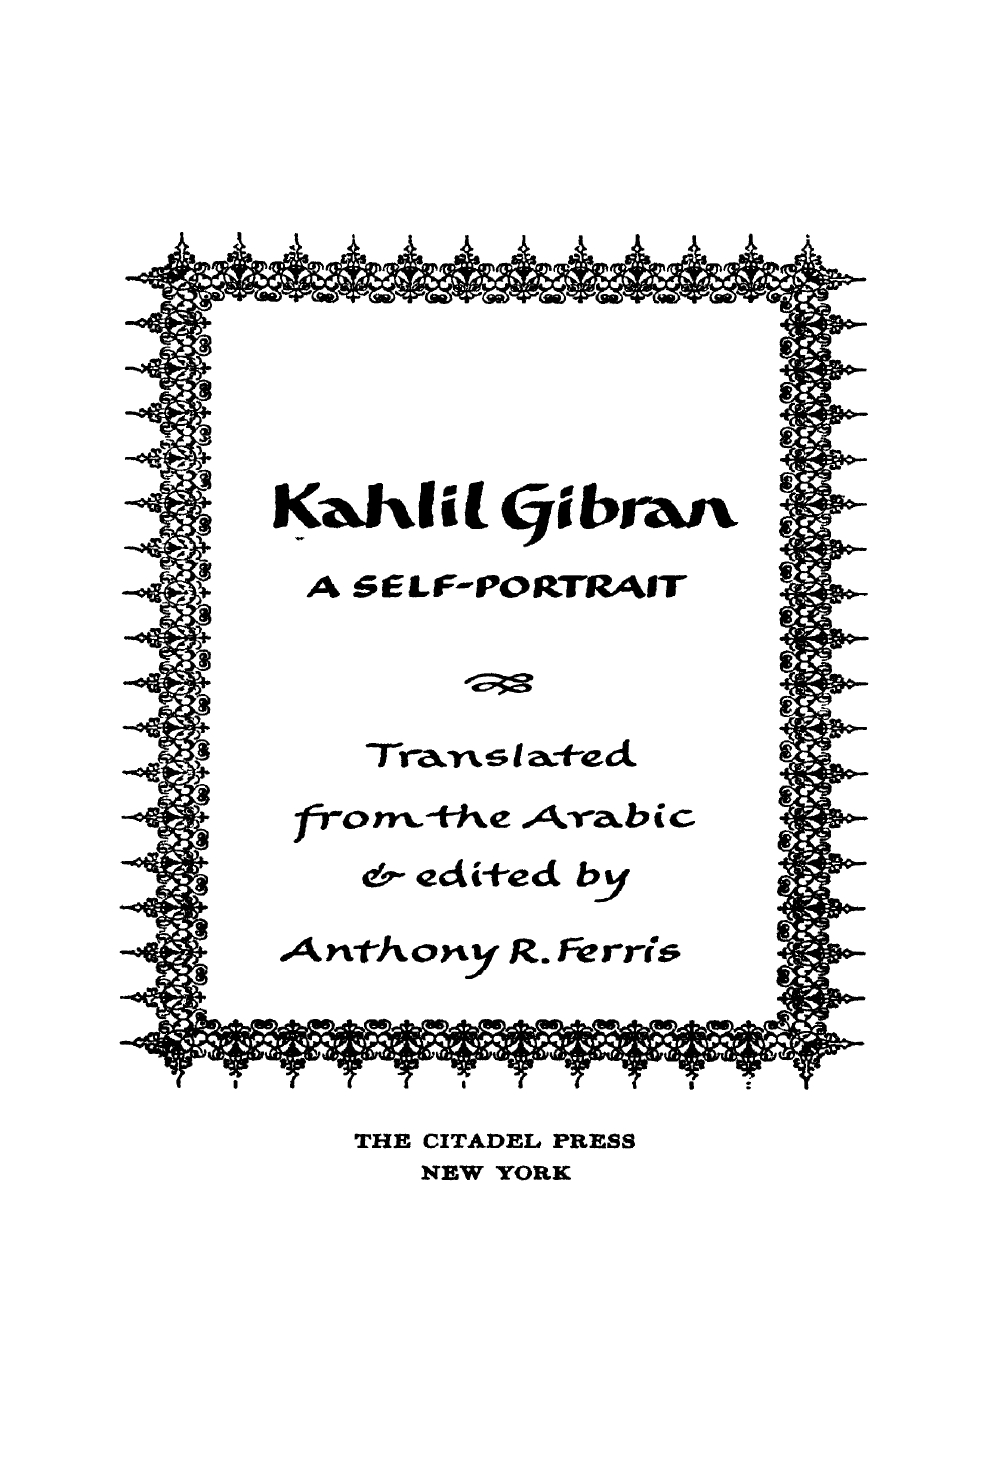 Kahlil Gibran: A Self-Portrait, Translated from the Arabic and Edited by Anthony R. Ferris, New York: The Citadel Press, 1959.